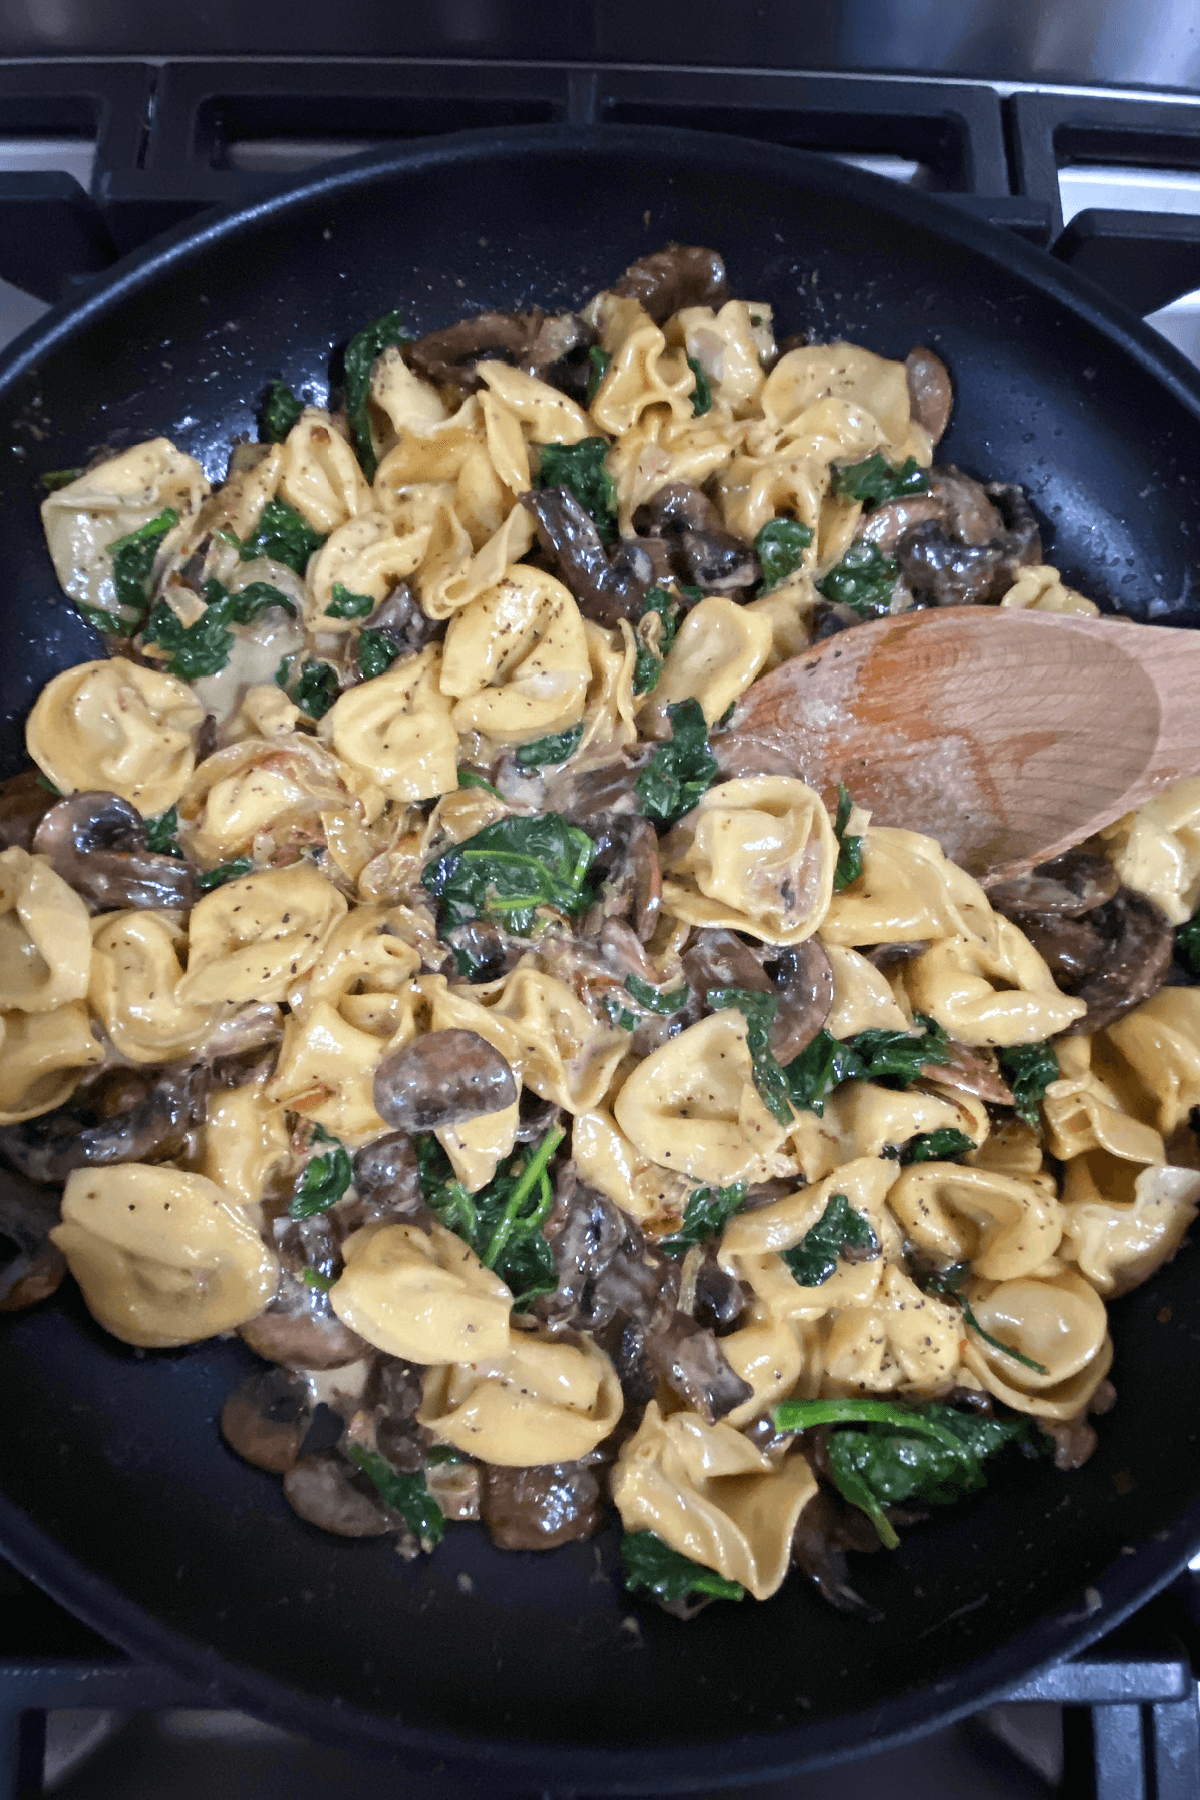 Cheese tortellini pasta mixed with caramelized onions, spinach and mushrooms in a large skillet for a easy weeknight meal.